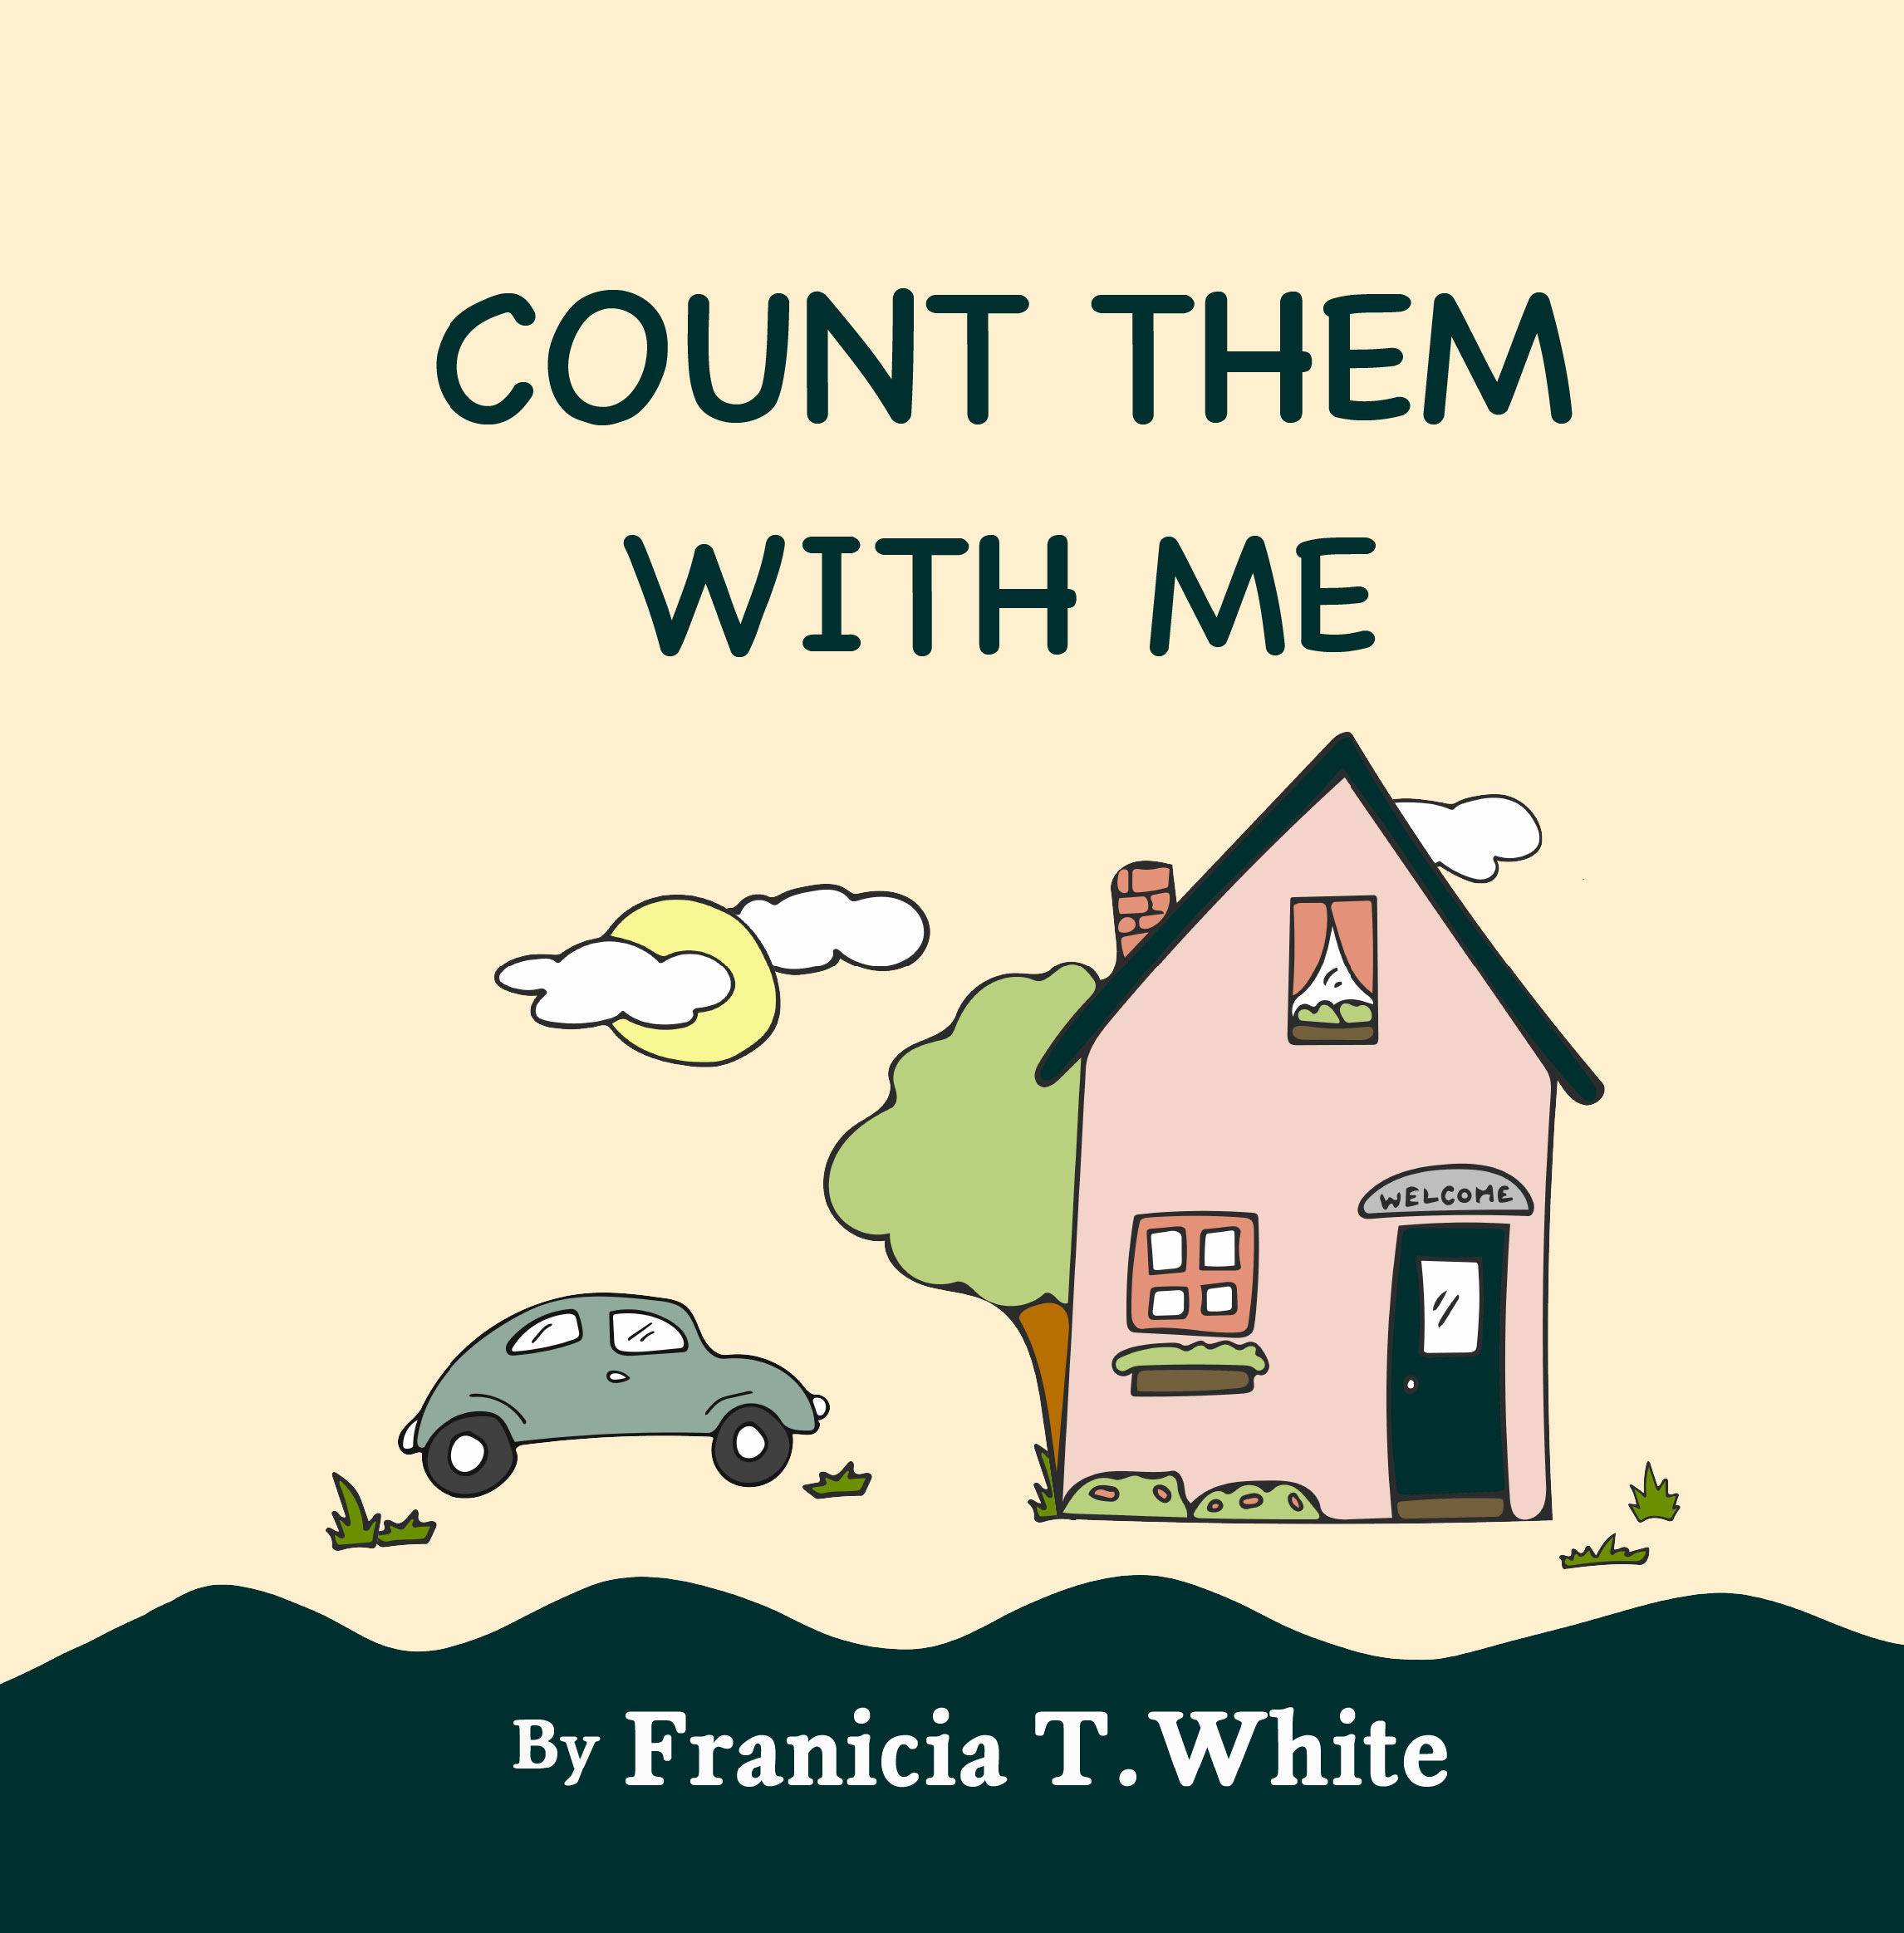 Count Them with Me_Page_01.jpg